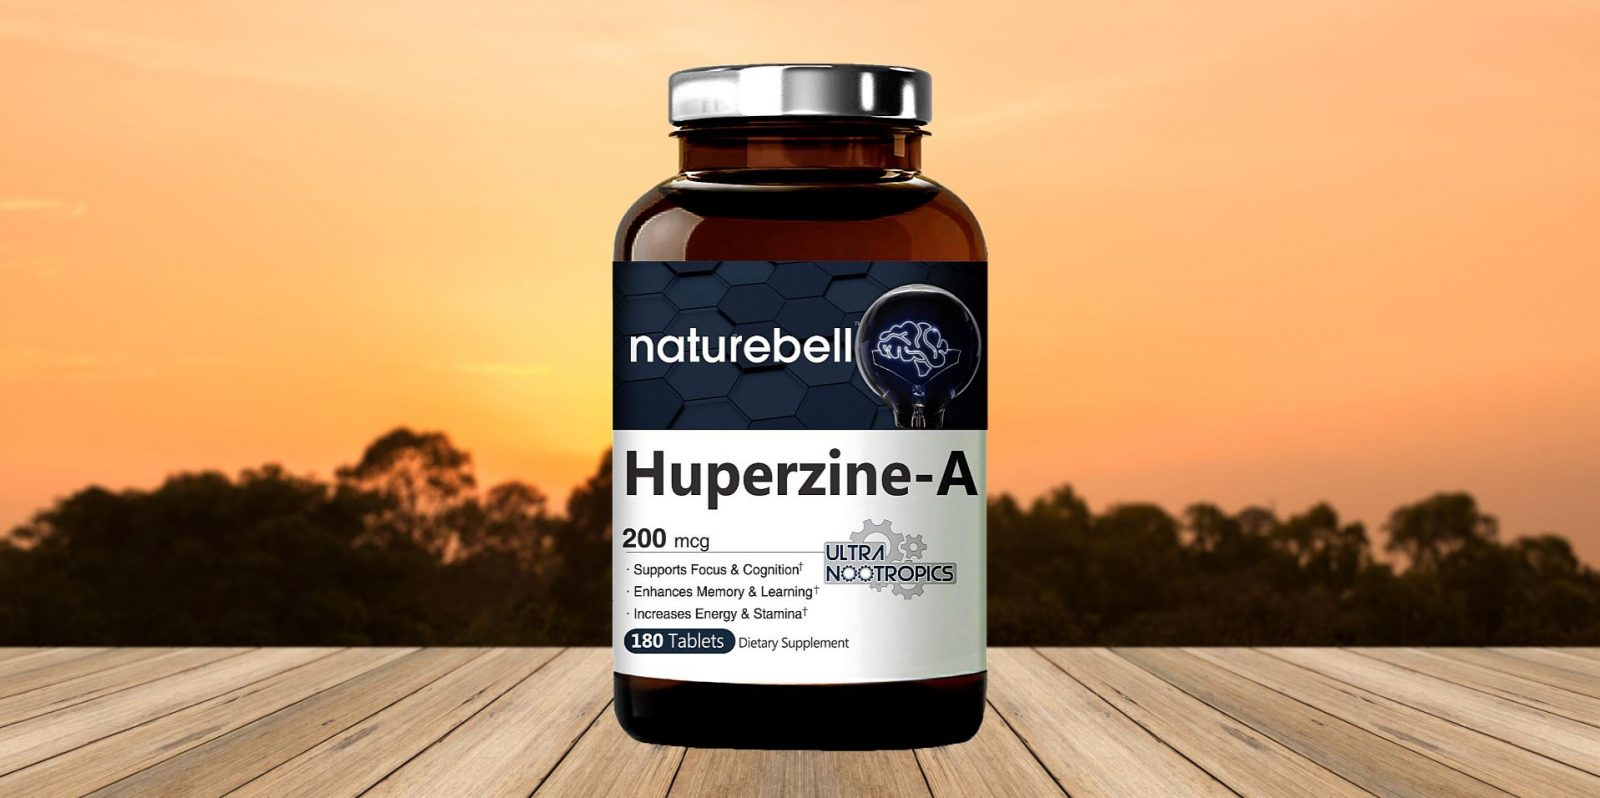 NatureBell Huperzine A Tablets